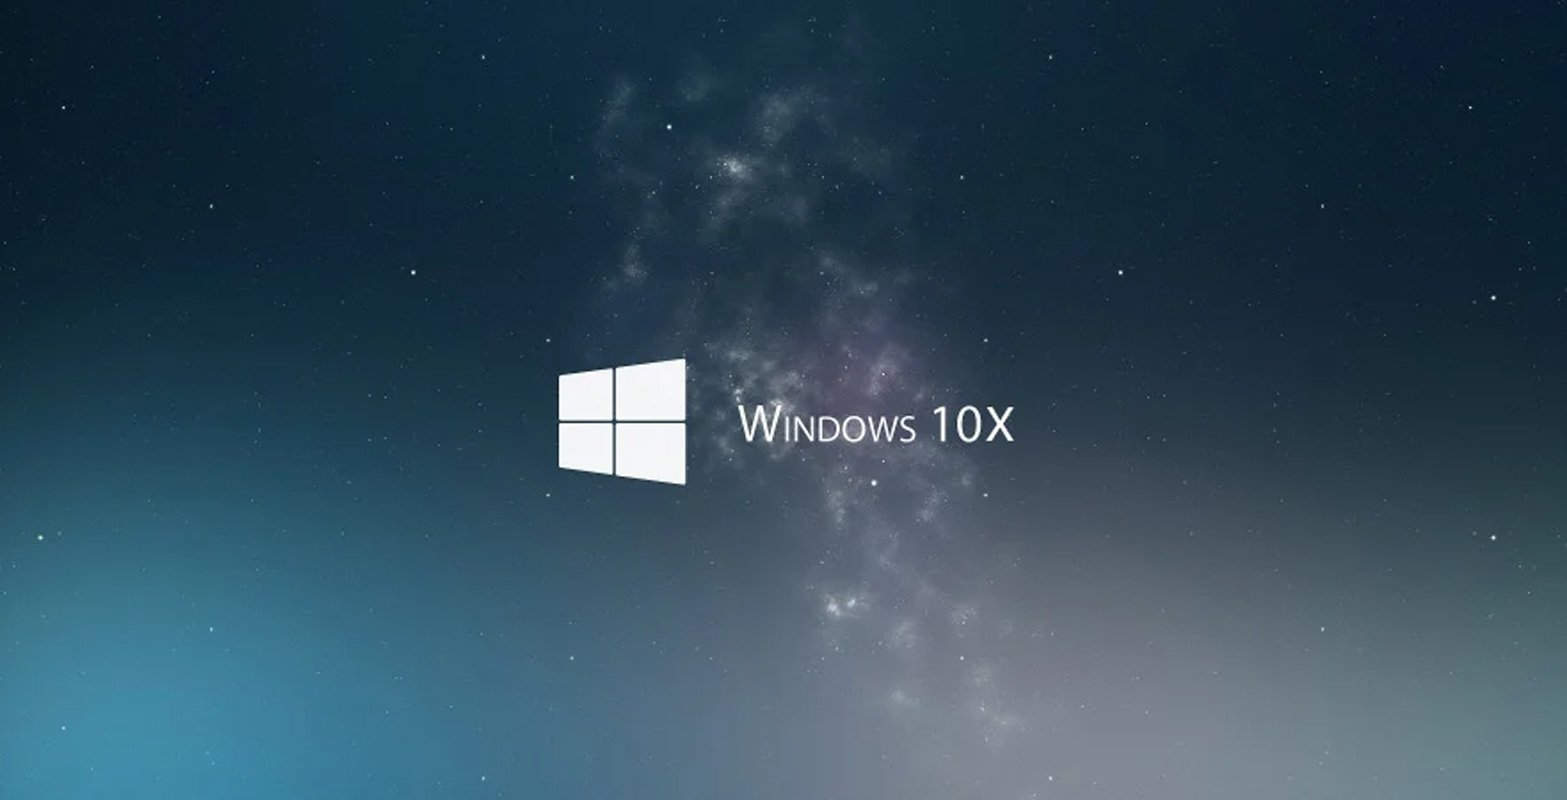 Windows 10X is arriving next year